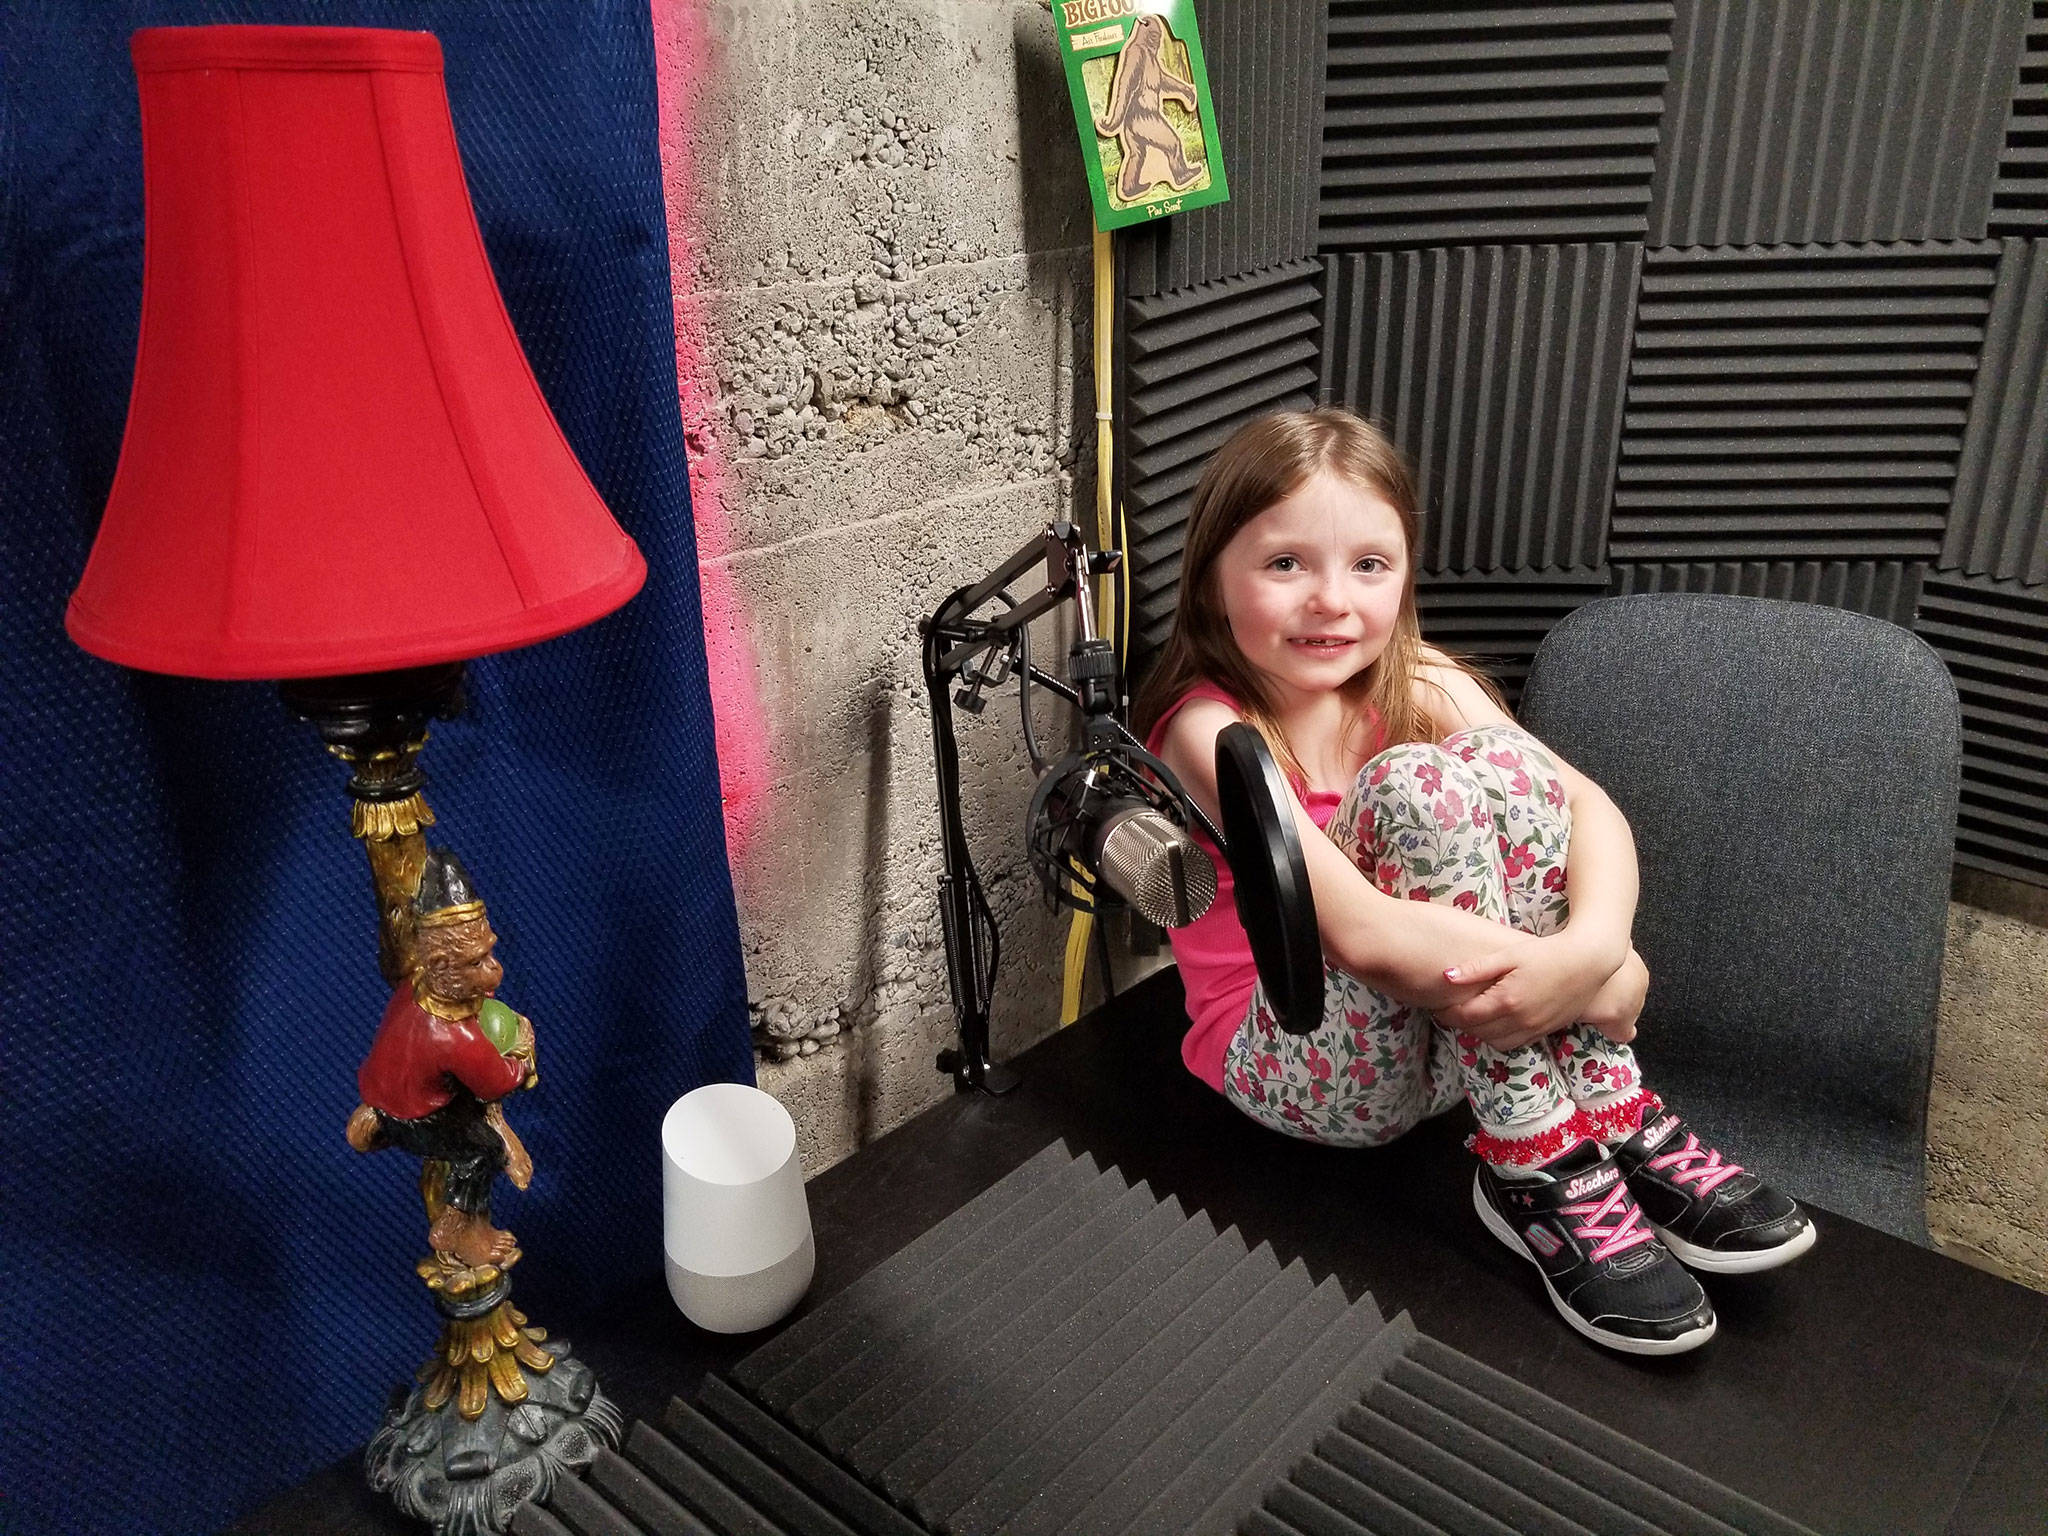 Maezie Ellis, 7, helps with the podcasts. (Submitted photo)